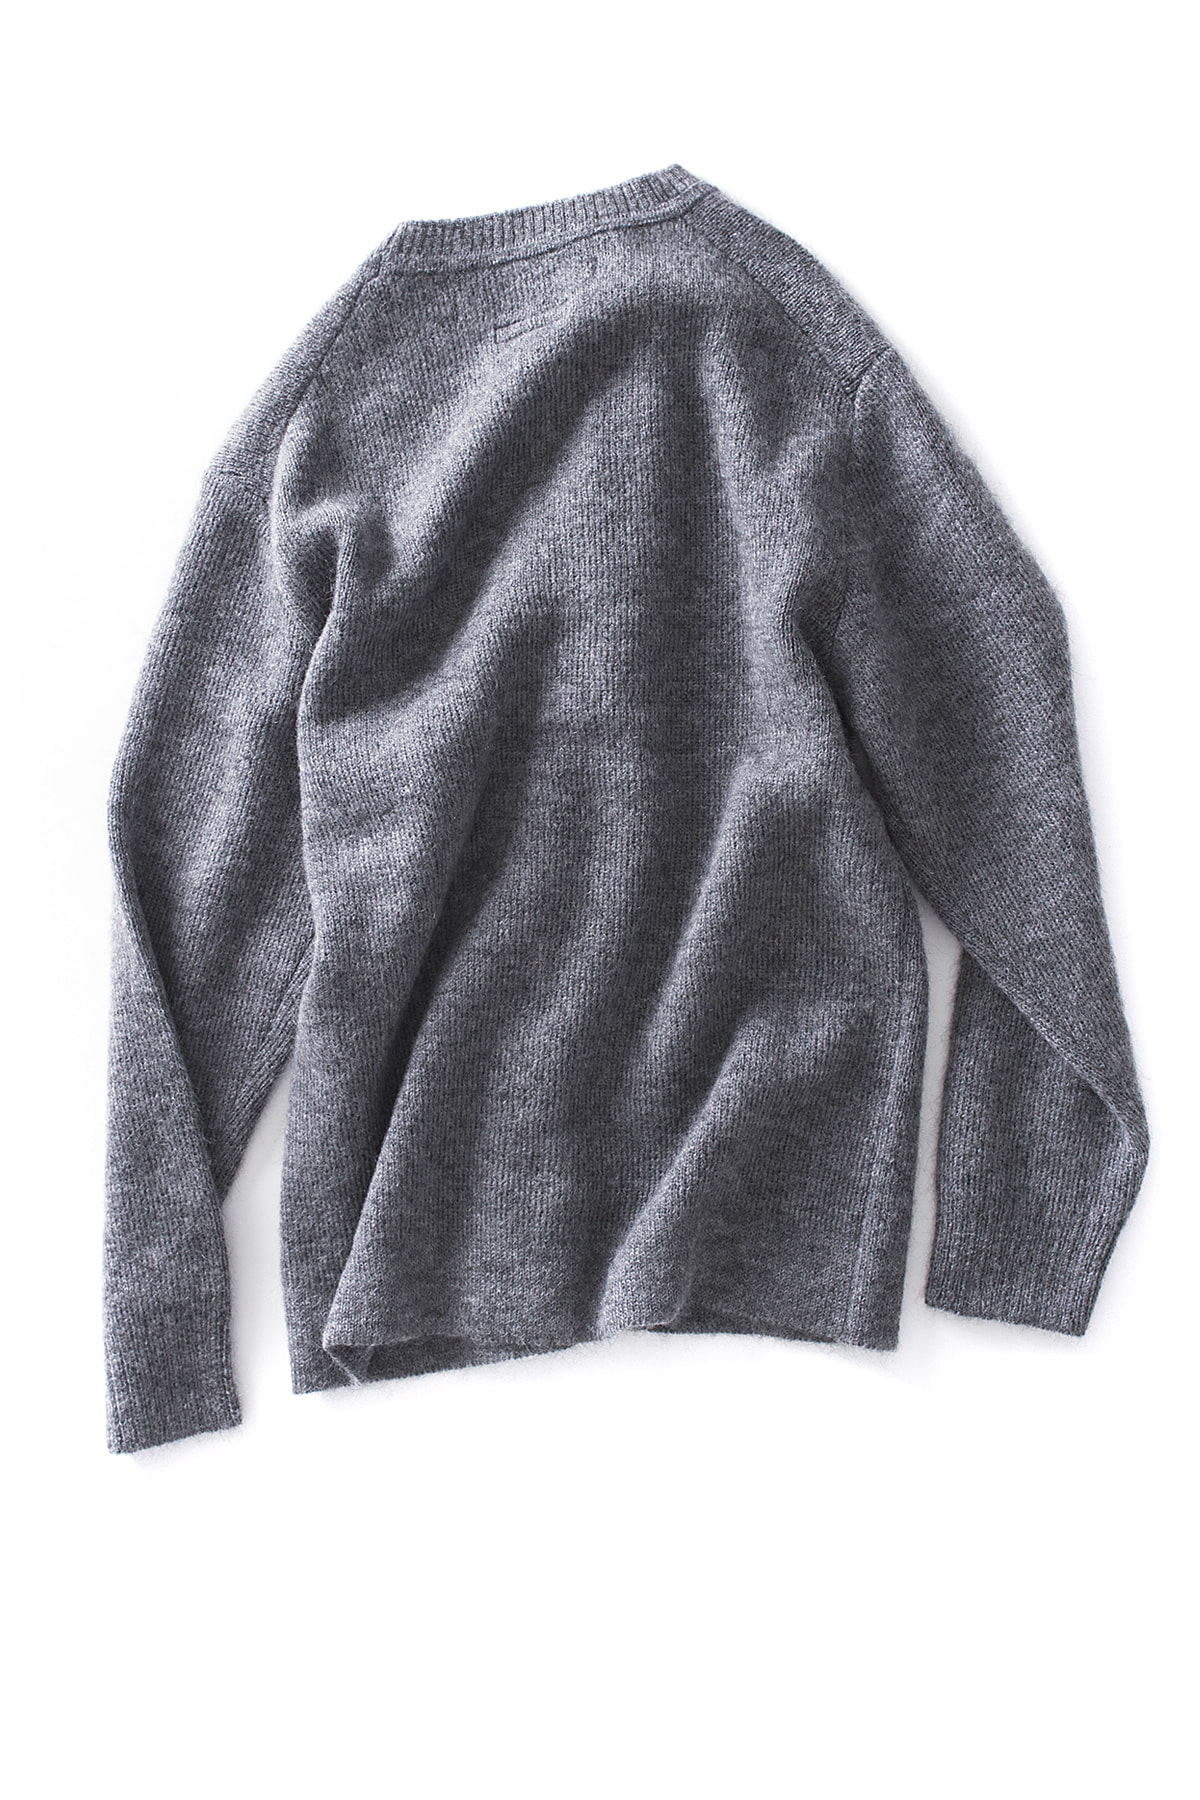 EEL : Alterna Sweater (Grey)